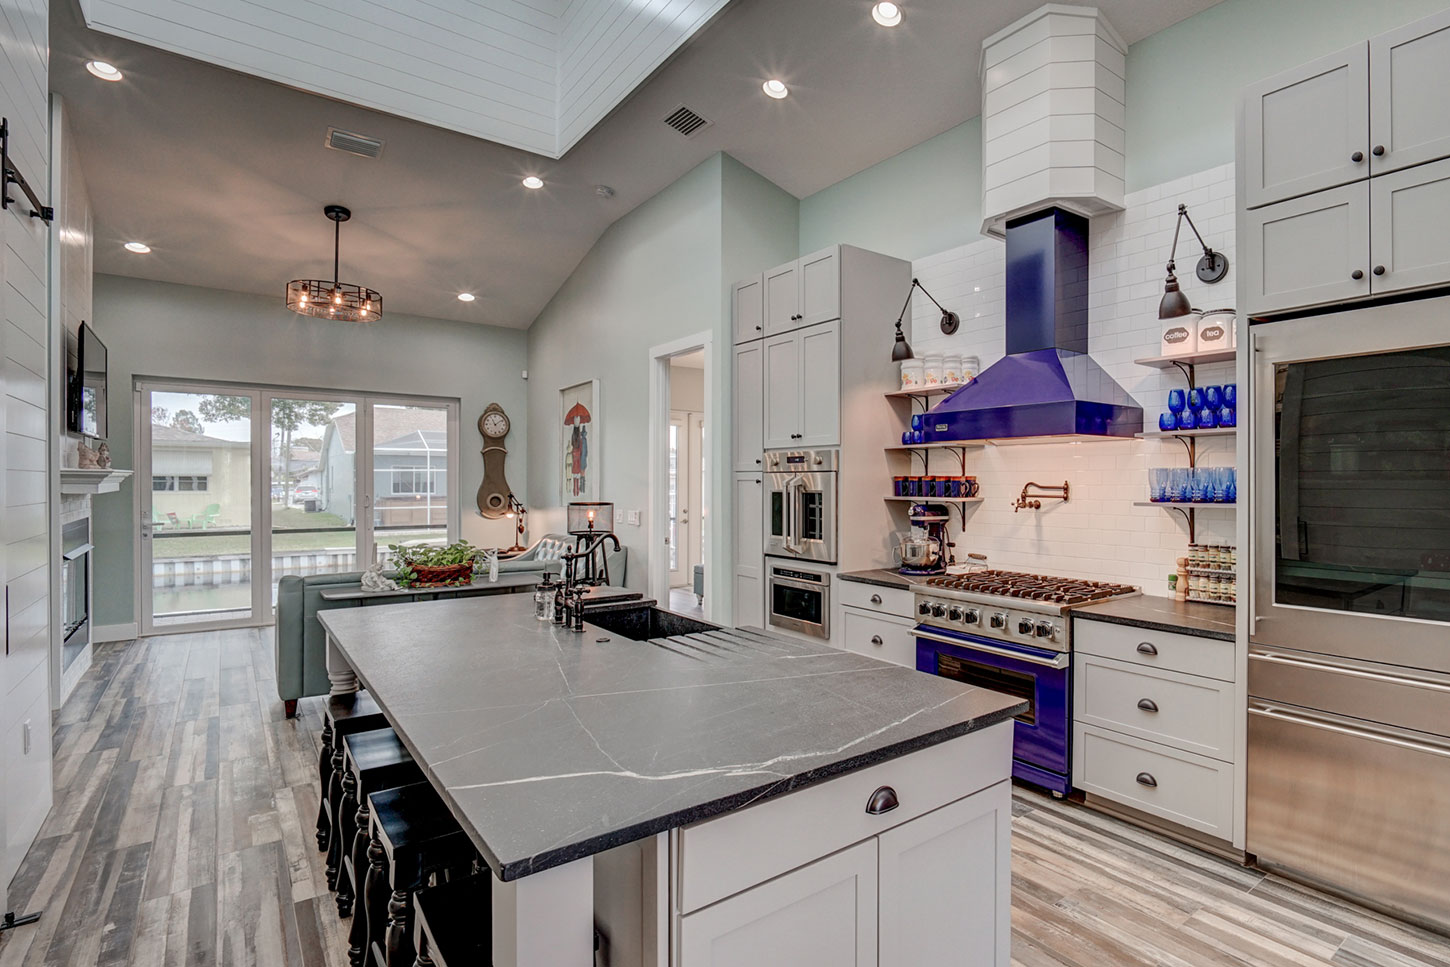 211-W-Canal-Dr-kitchen